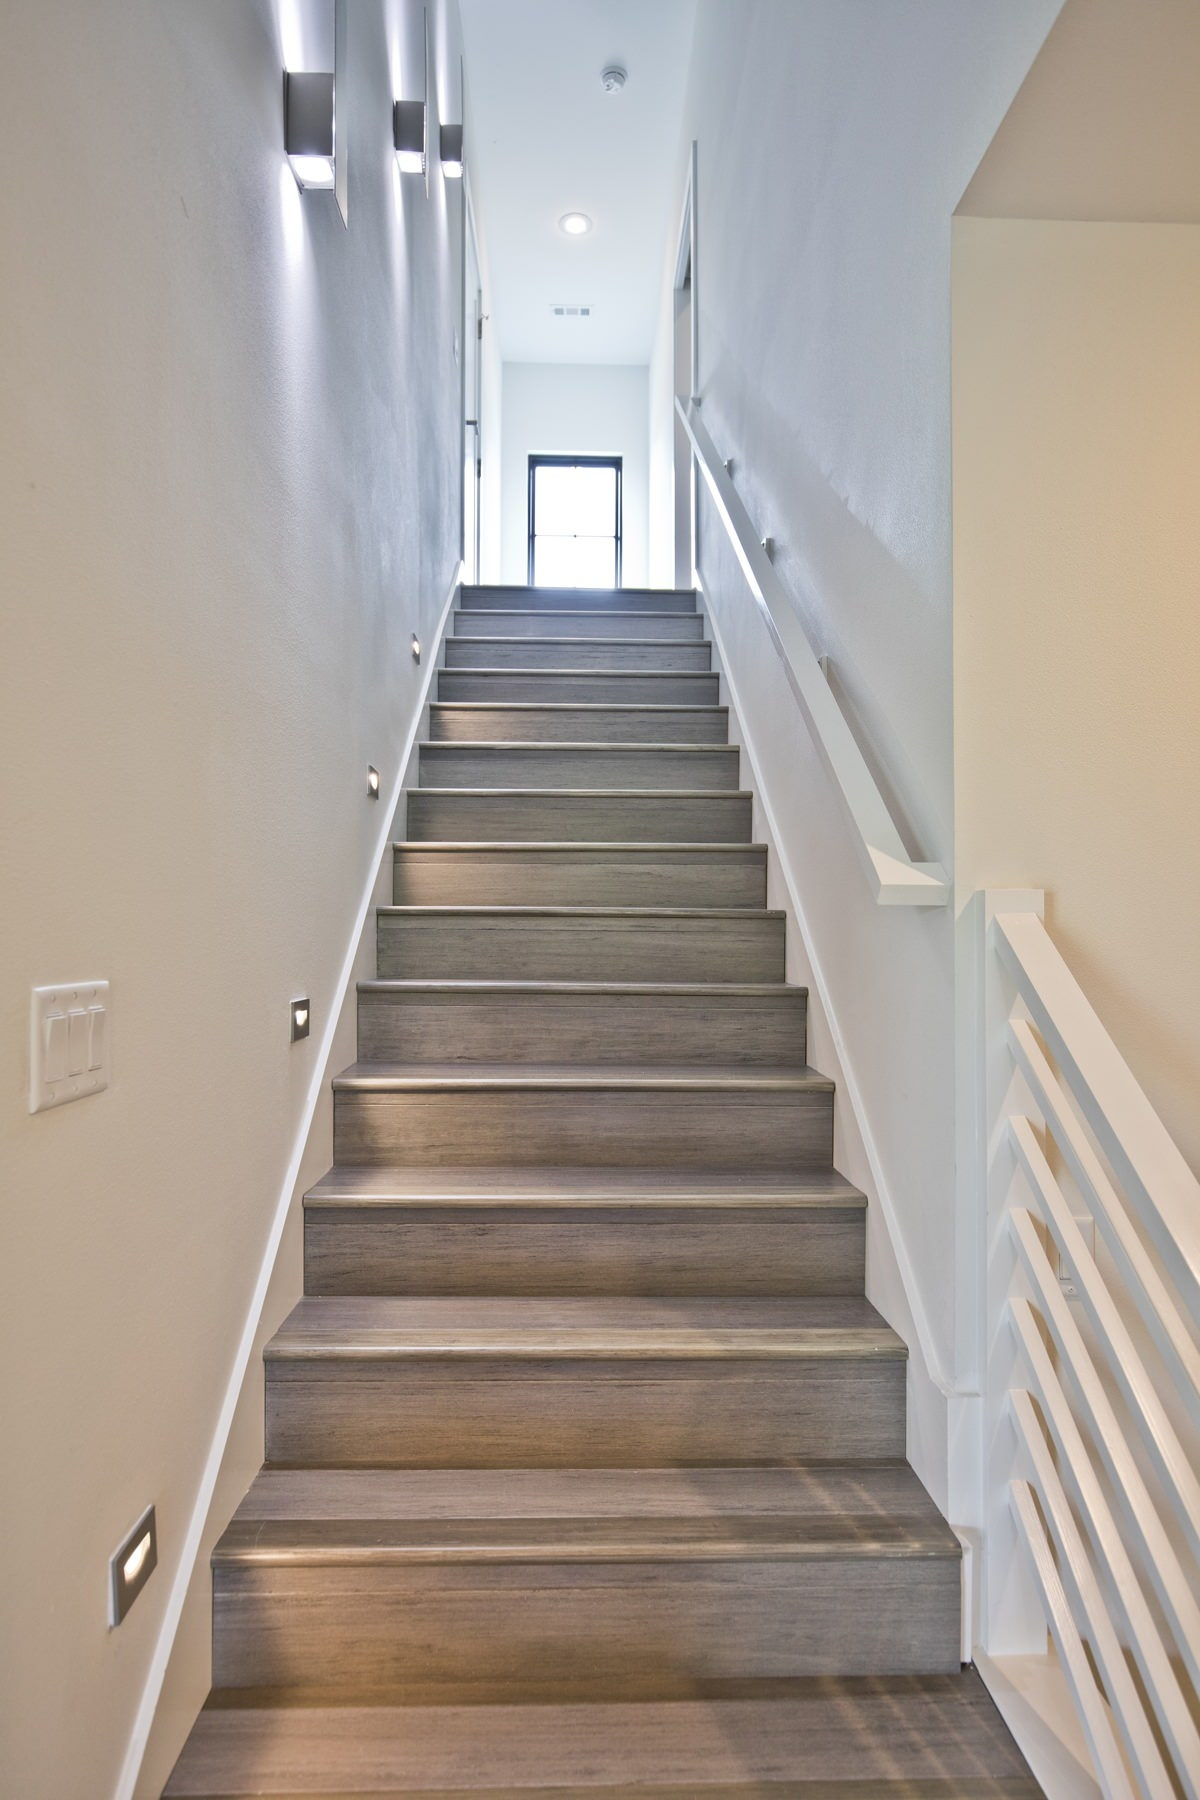 75 Beautiful Staircase Pictures Ideas September 2020 Houzz   Steel Design For Stairs   Spiral   Elegant Steel   Architectural Steel   Simple   Stringer